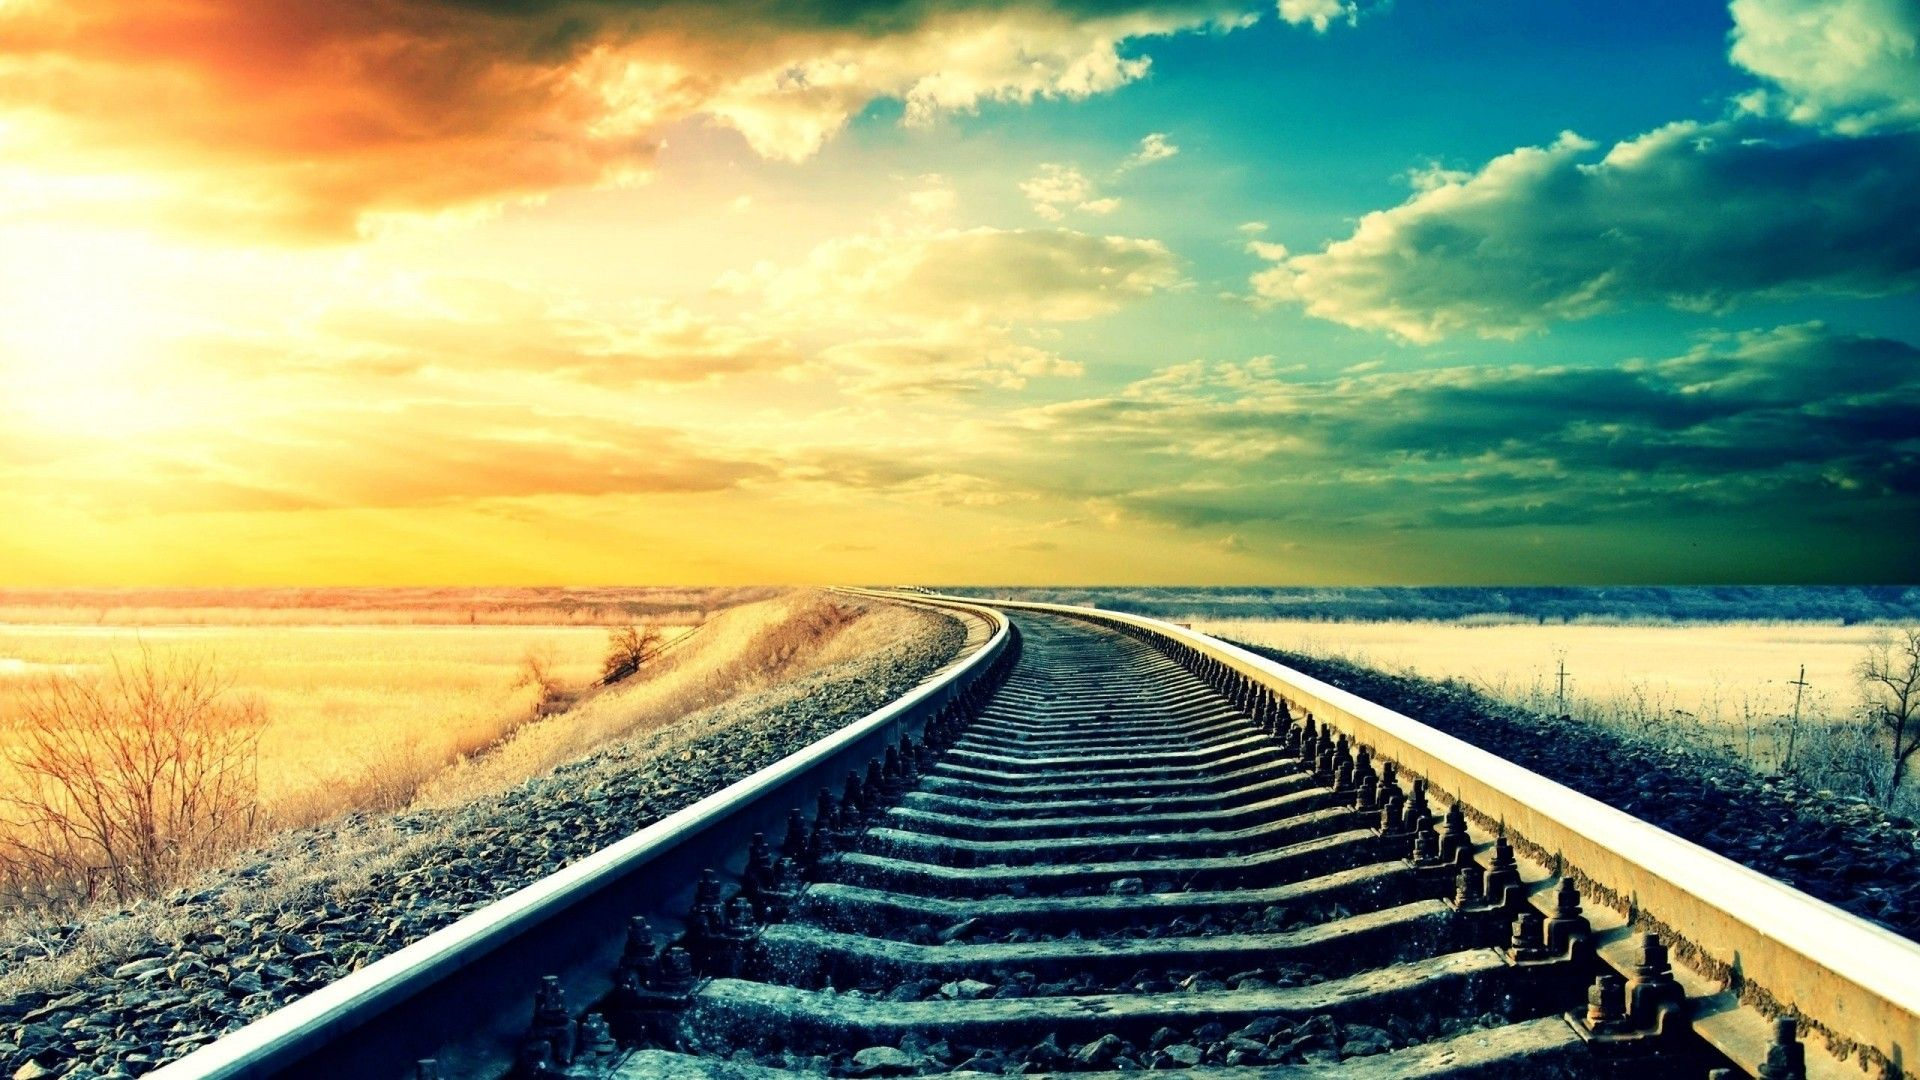 Photography Wallpapers 1080p Hd Wallpapers Desktop Hd Images Railroad Tracks Train Tracks Pictures